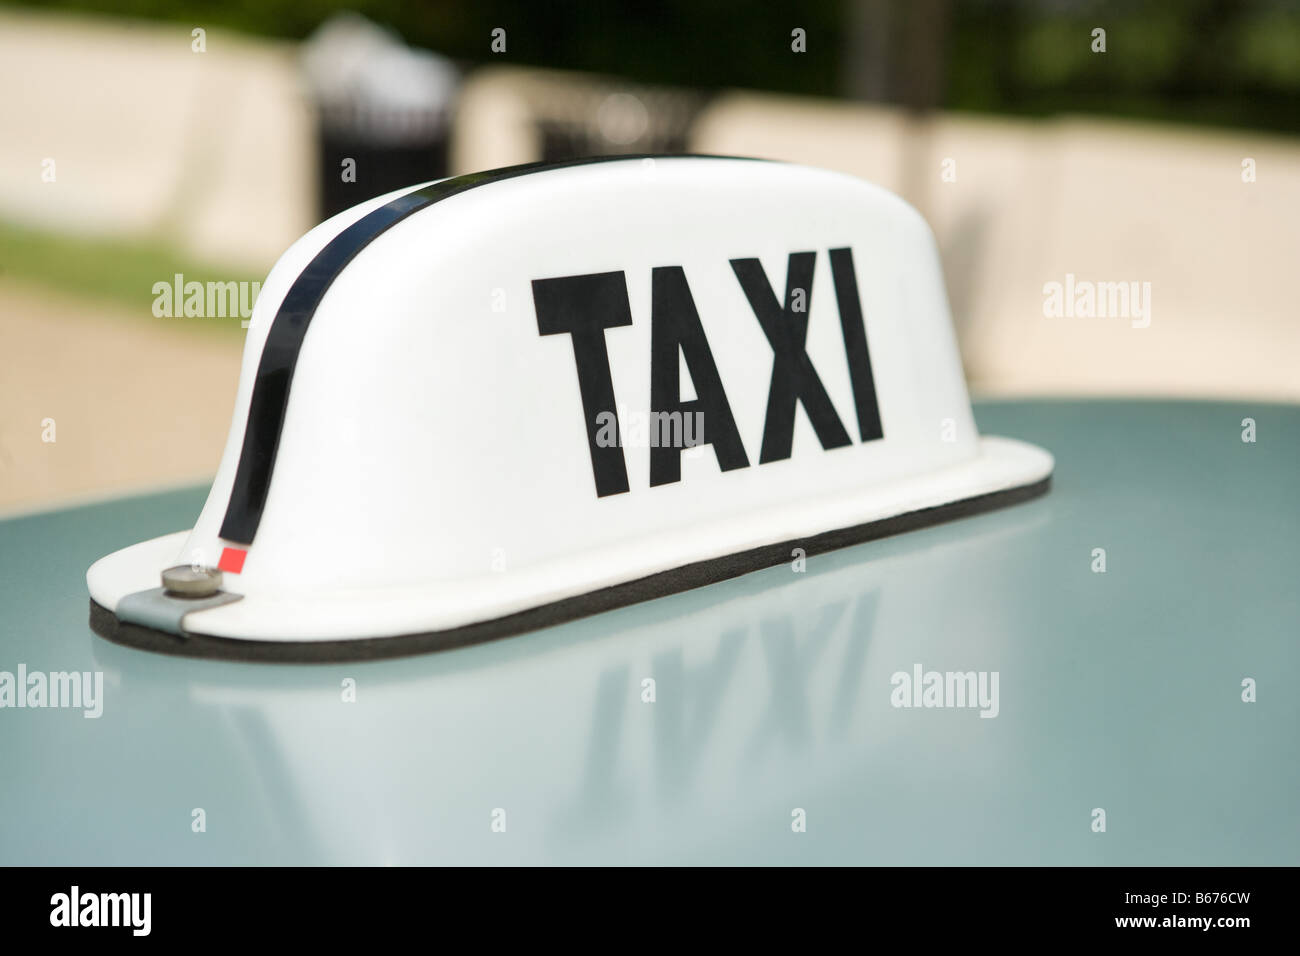 Taxi sign - Stock Image